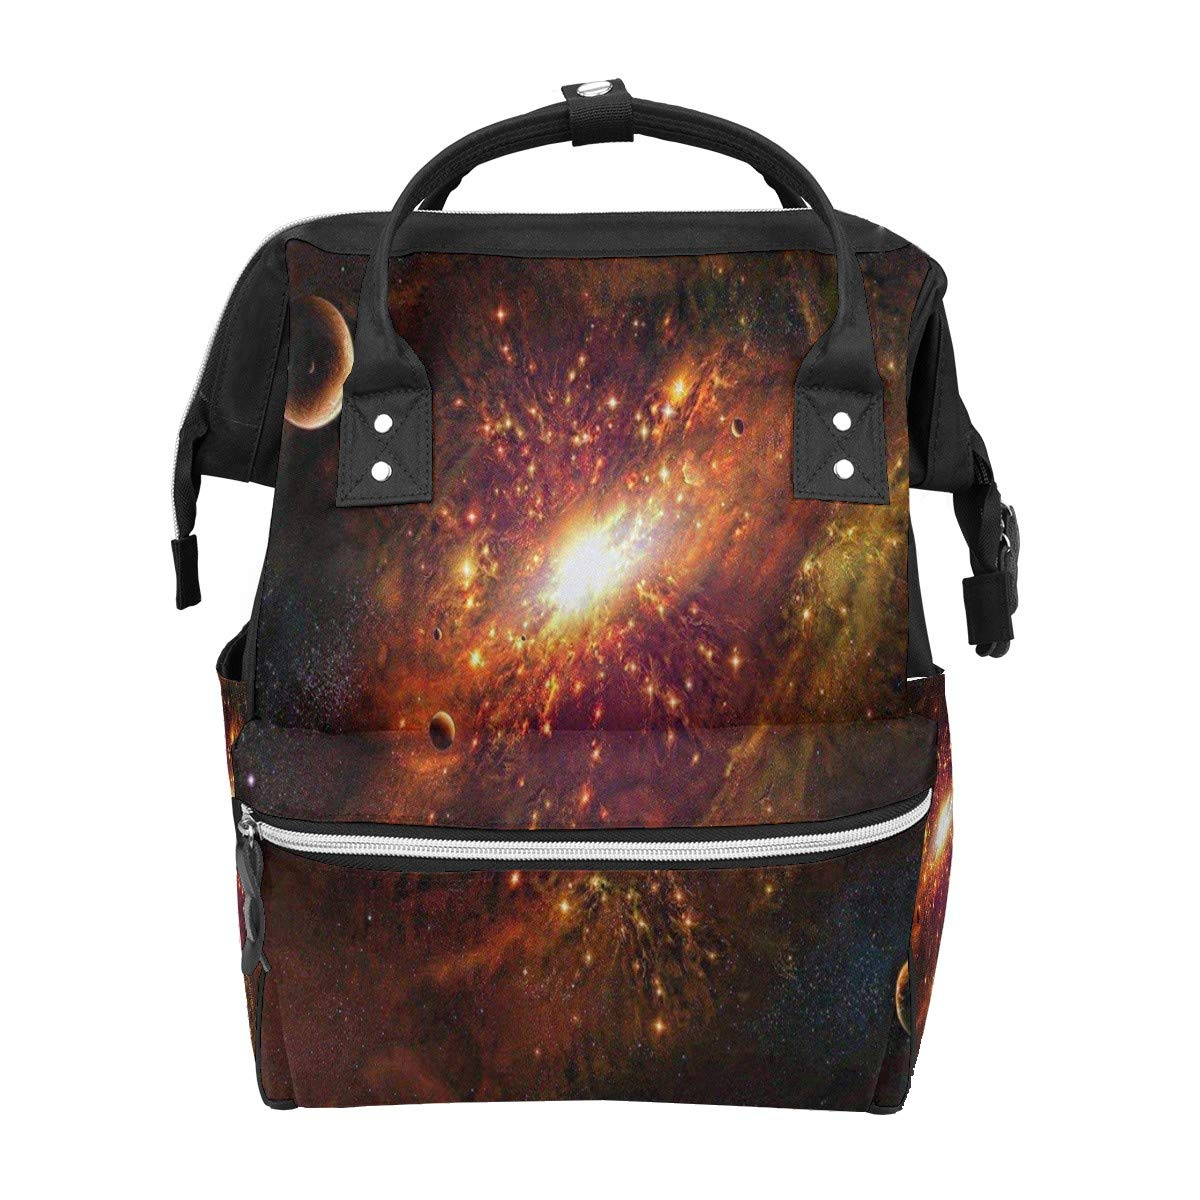 Diaper Bag Backpack Composing Space Star Moon Multifunction Travel Back Pack Baby Changing Bags Large Capacity Waterproof Stylish